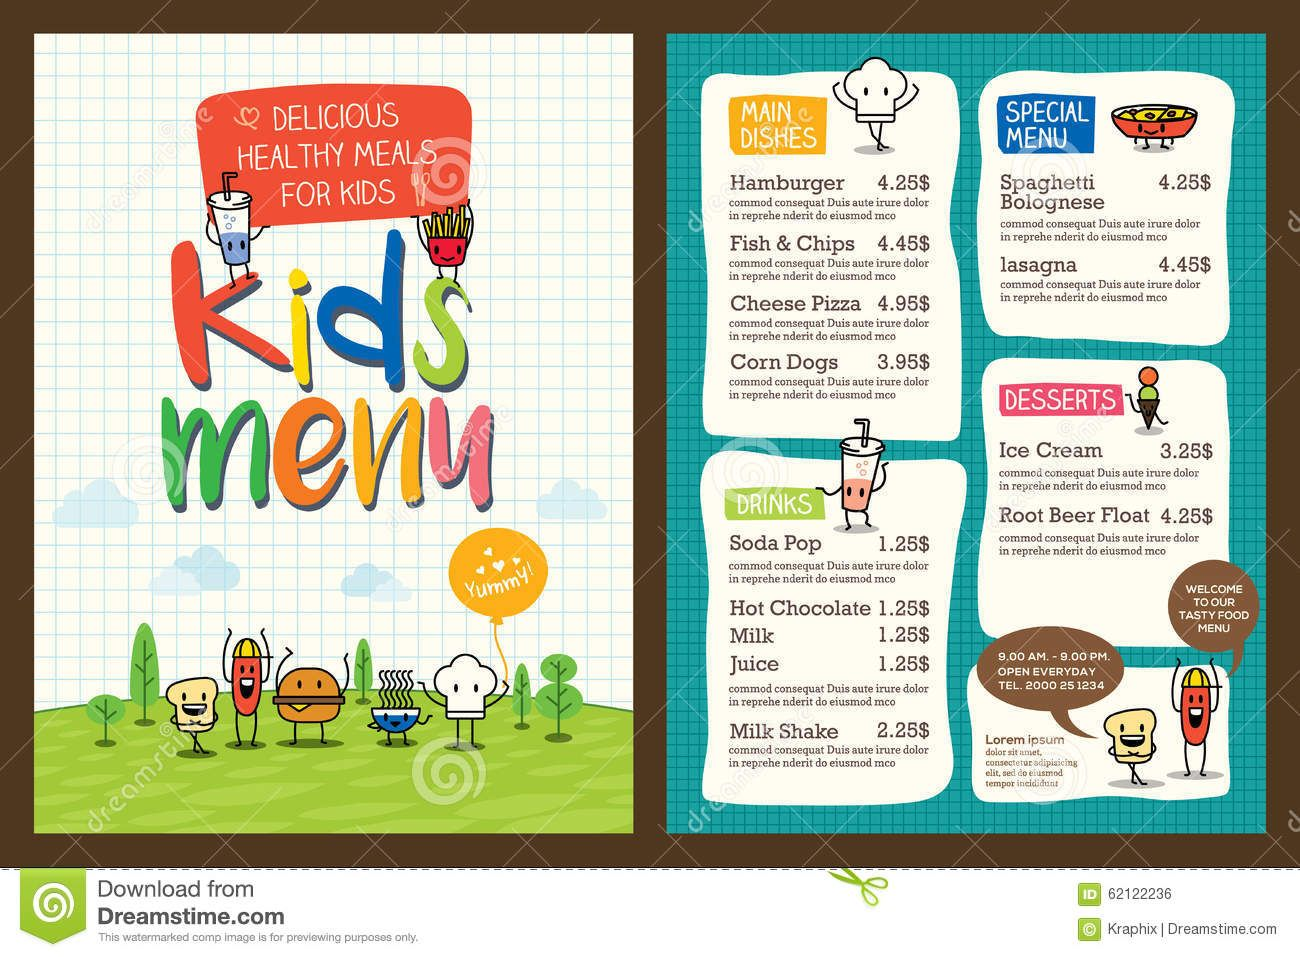 cute colorful kids meal menu template download from over 64 million high quality stock photos images vectors sign up for free today image 62122236